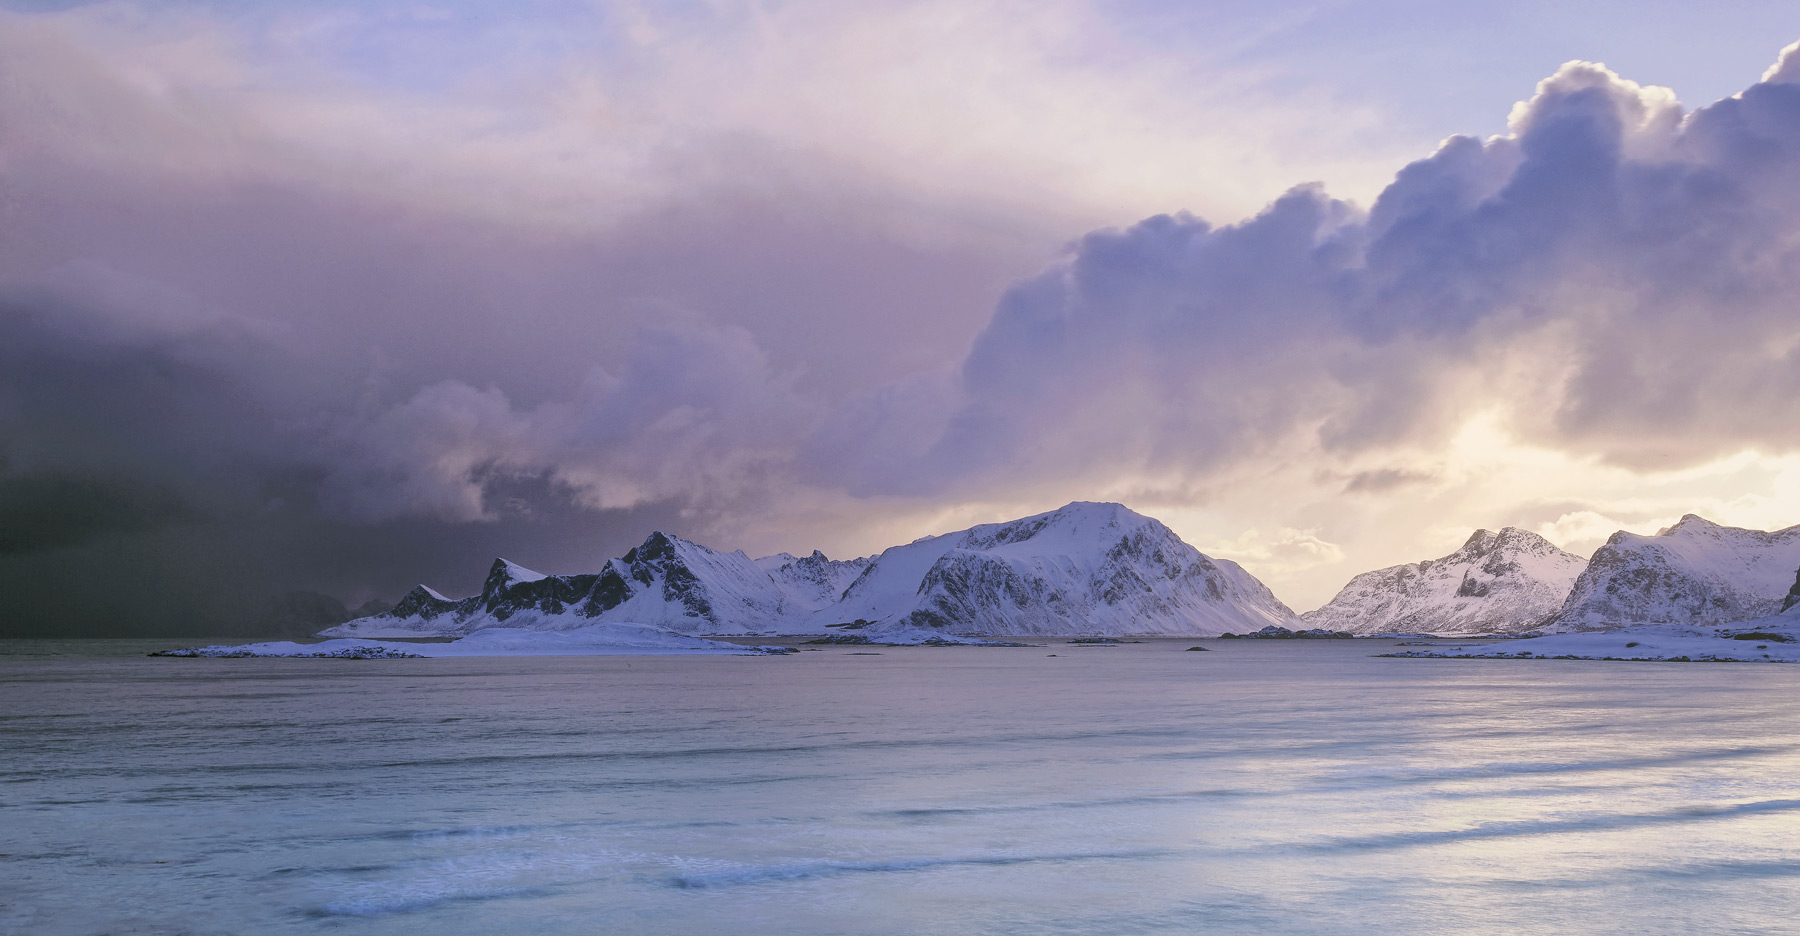 The most amazing clouds billowed off of the Flakstad peaks as viewed from across Yttresand bay shortly after sunrise. The...